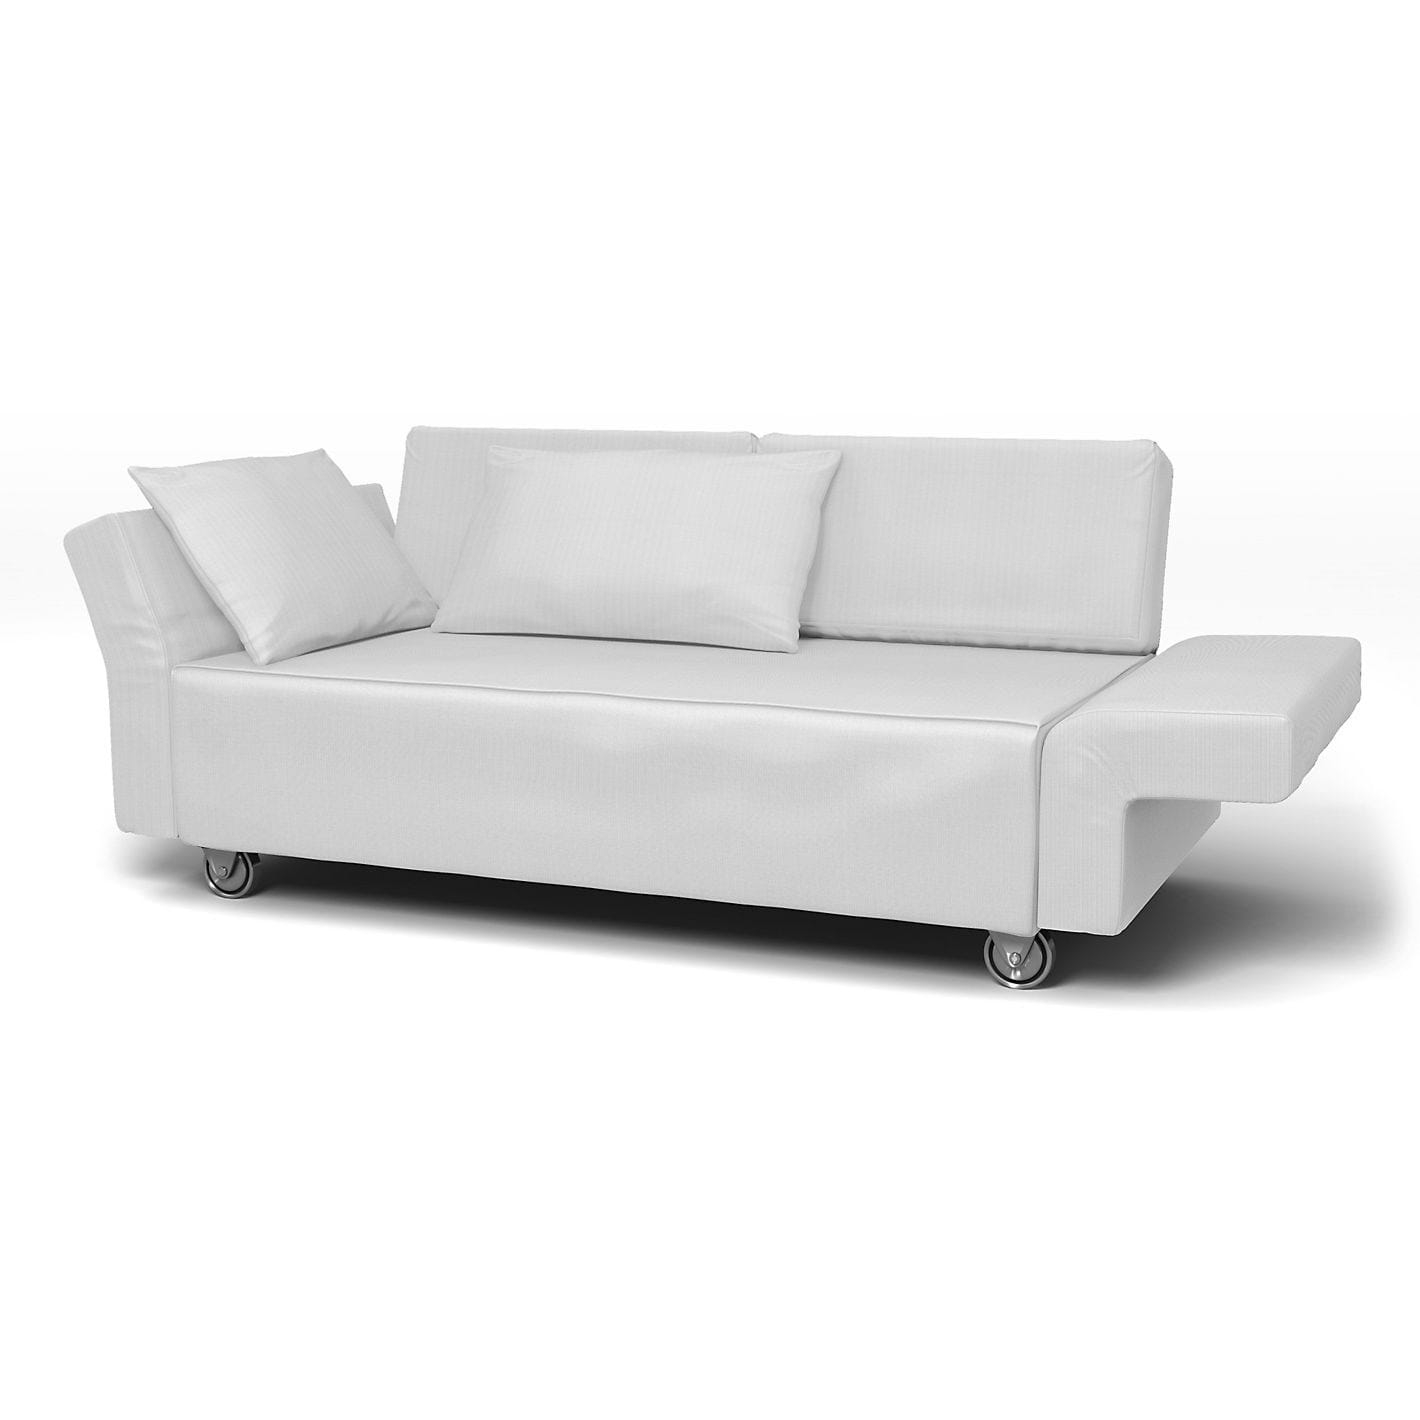 Prime Sofa Covers For Ikea Couches Bemz Ocoug Best Dining Table And Chair Ideas Images Ocougorg